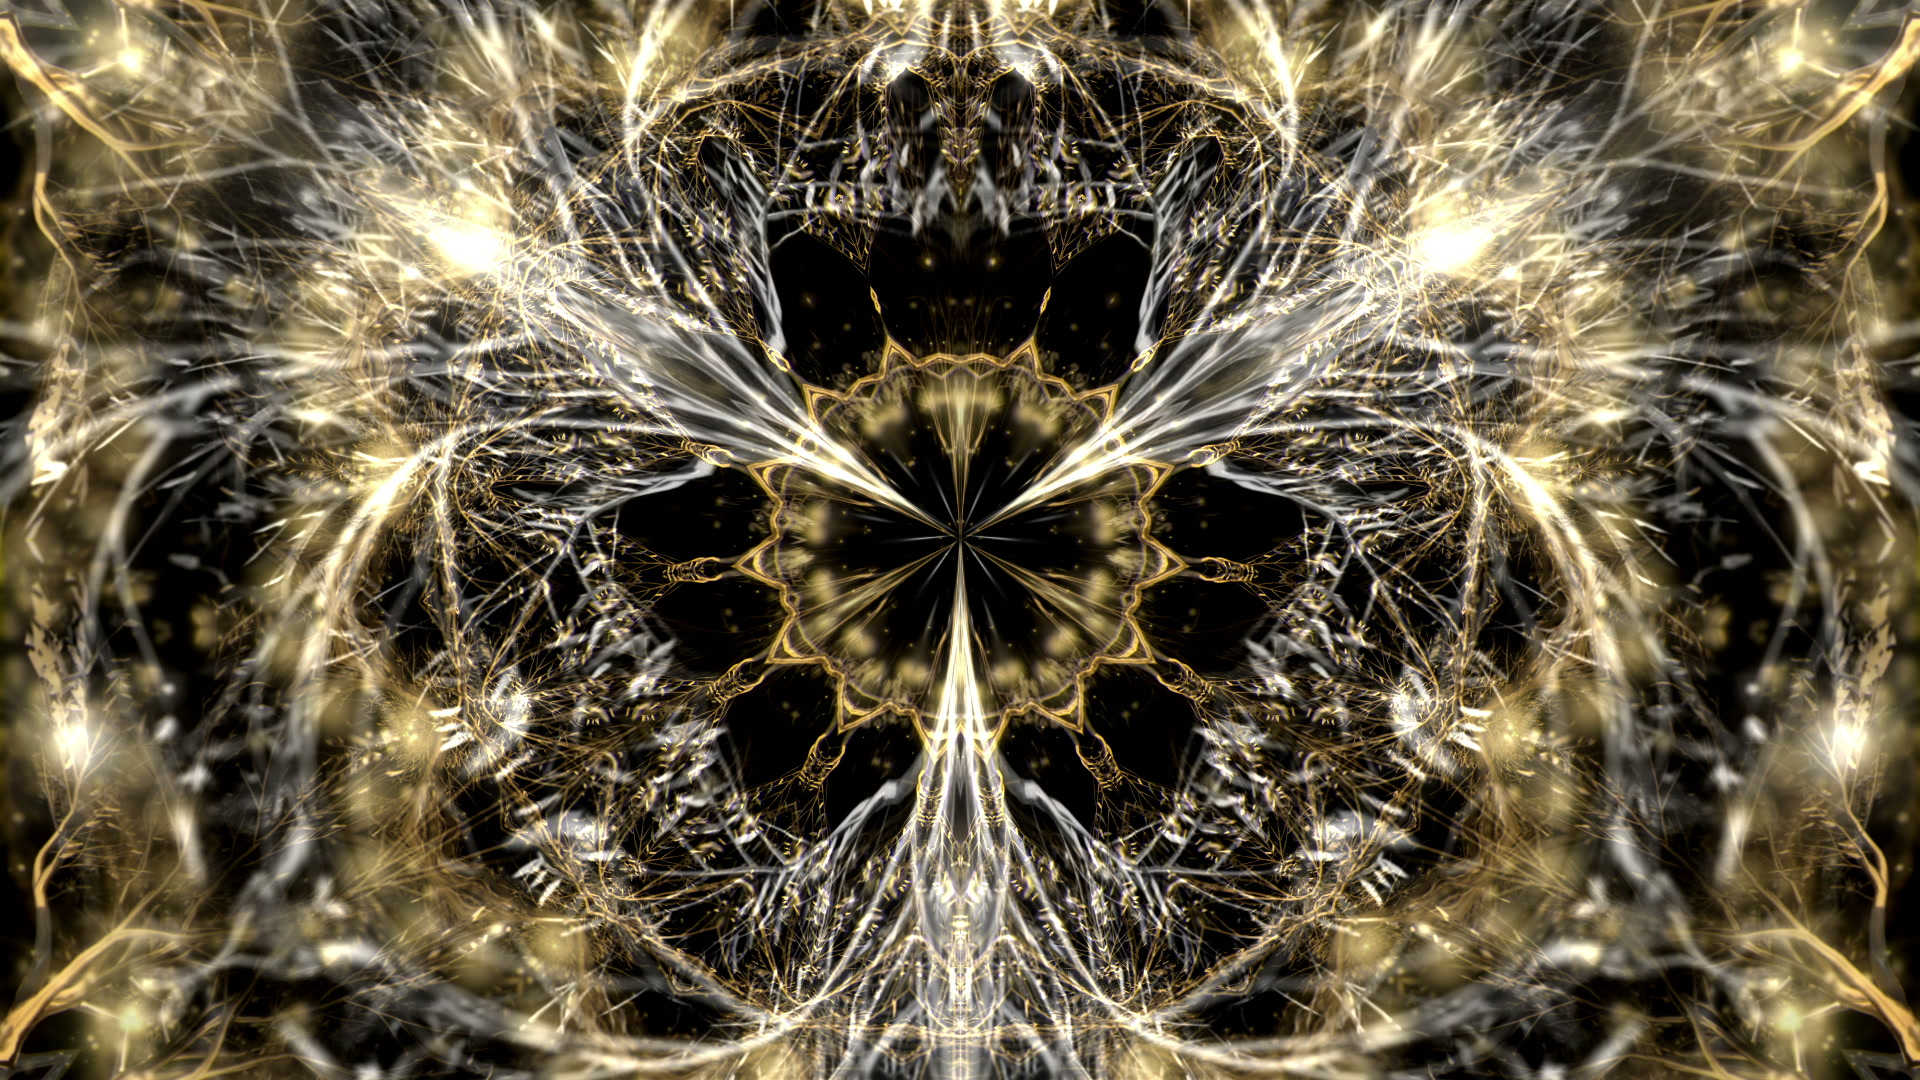 vj video background Gilded-Roots-Neocortex-Gothic-Leaf-Vj-Loop-LIMEART_003